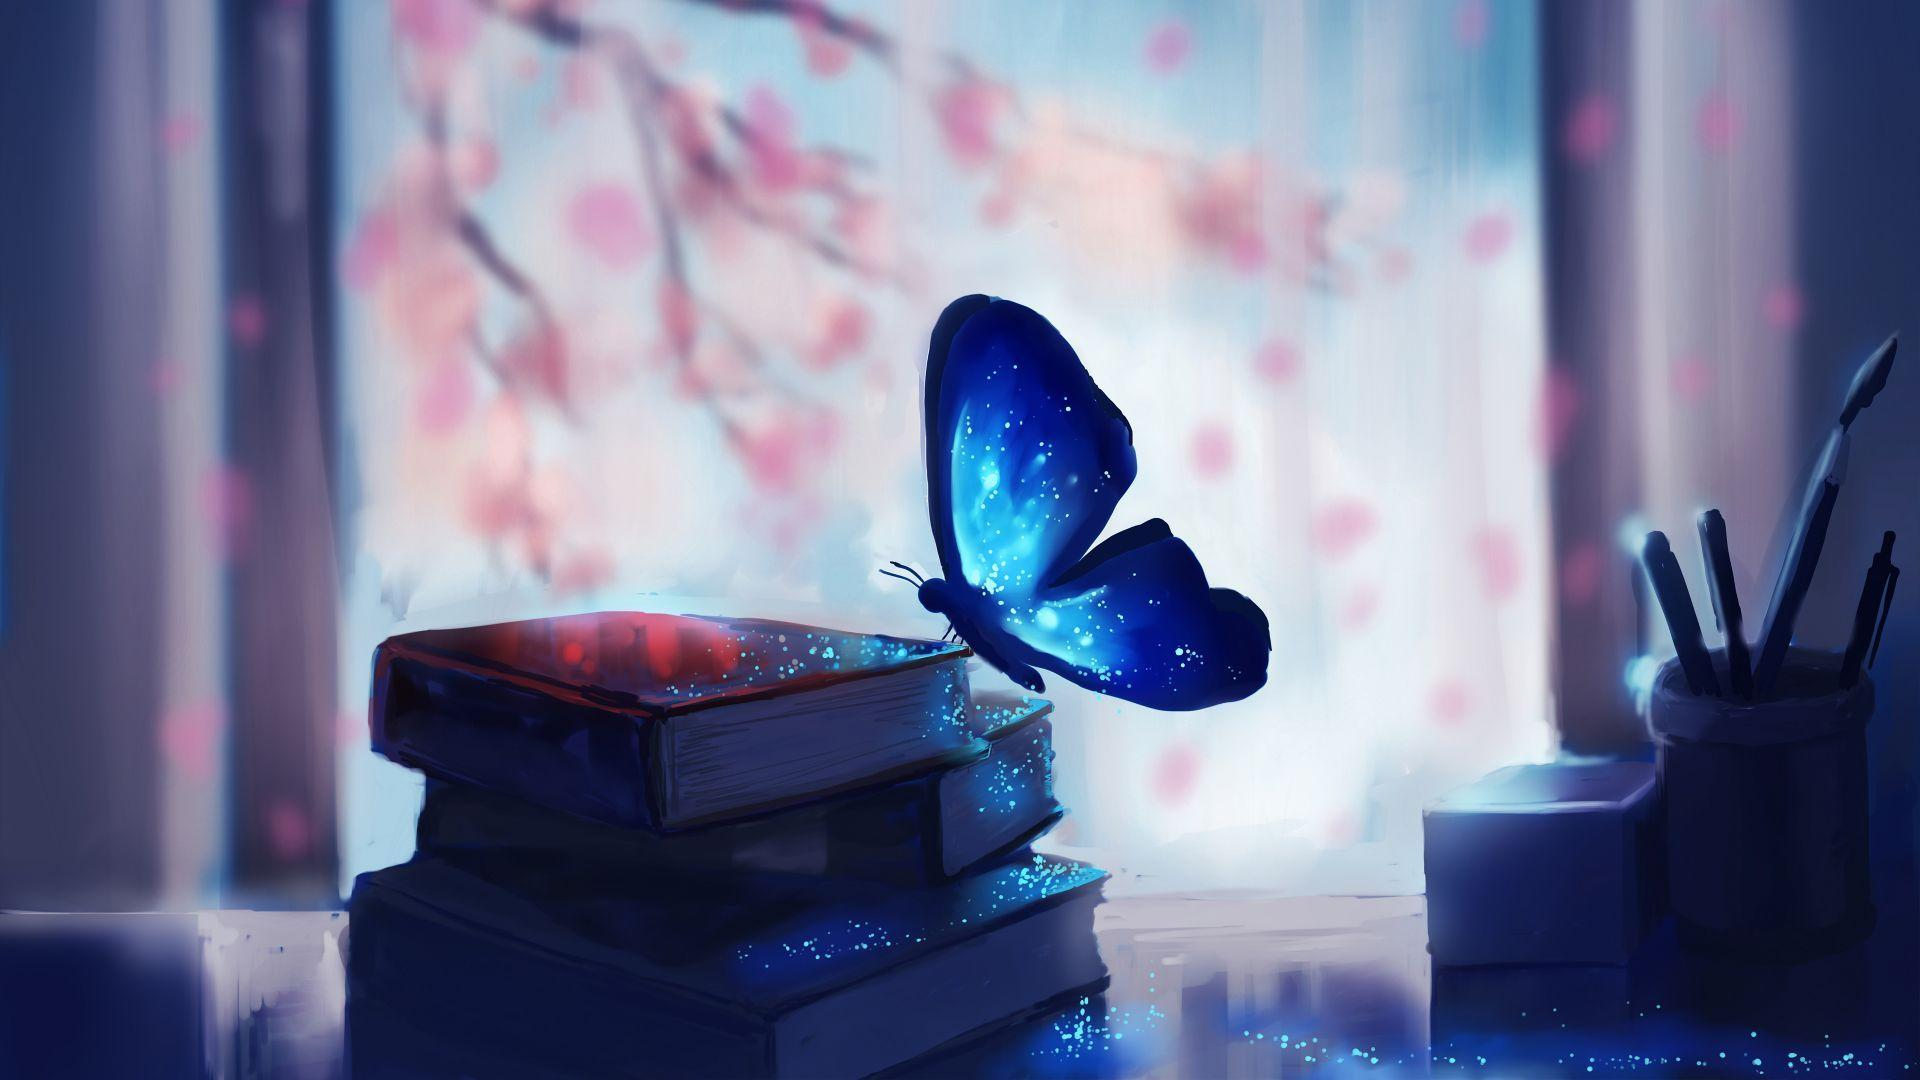 Aesthetic Butterfly Horizontal Wallpapers Wallpaper Cave